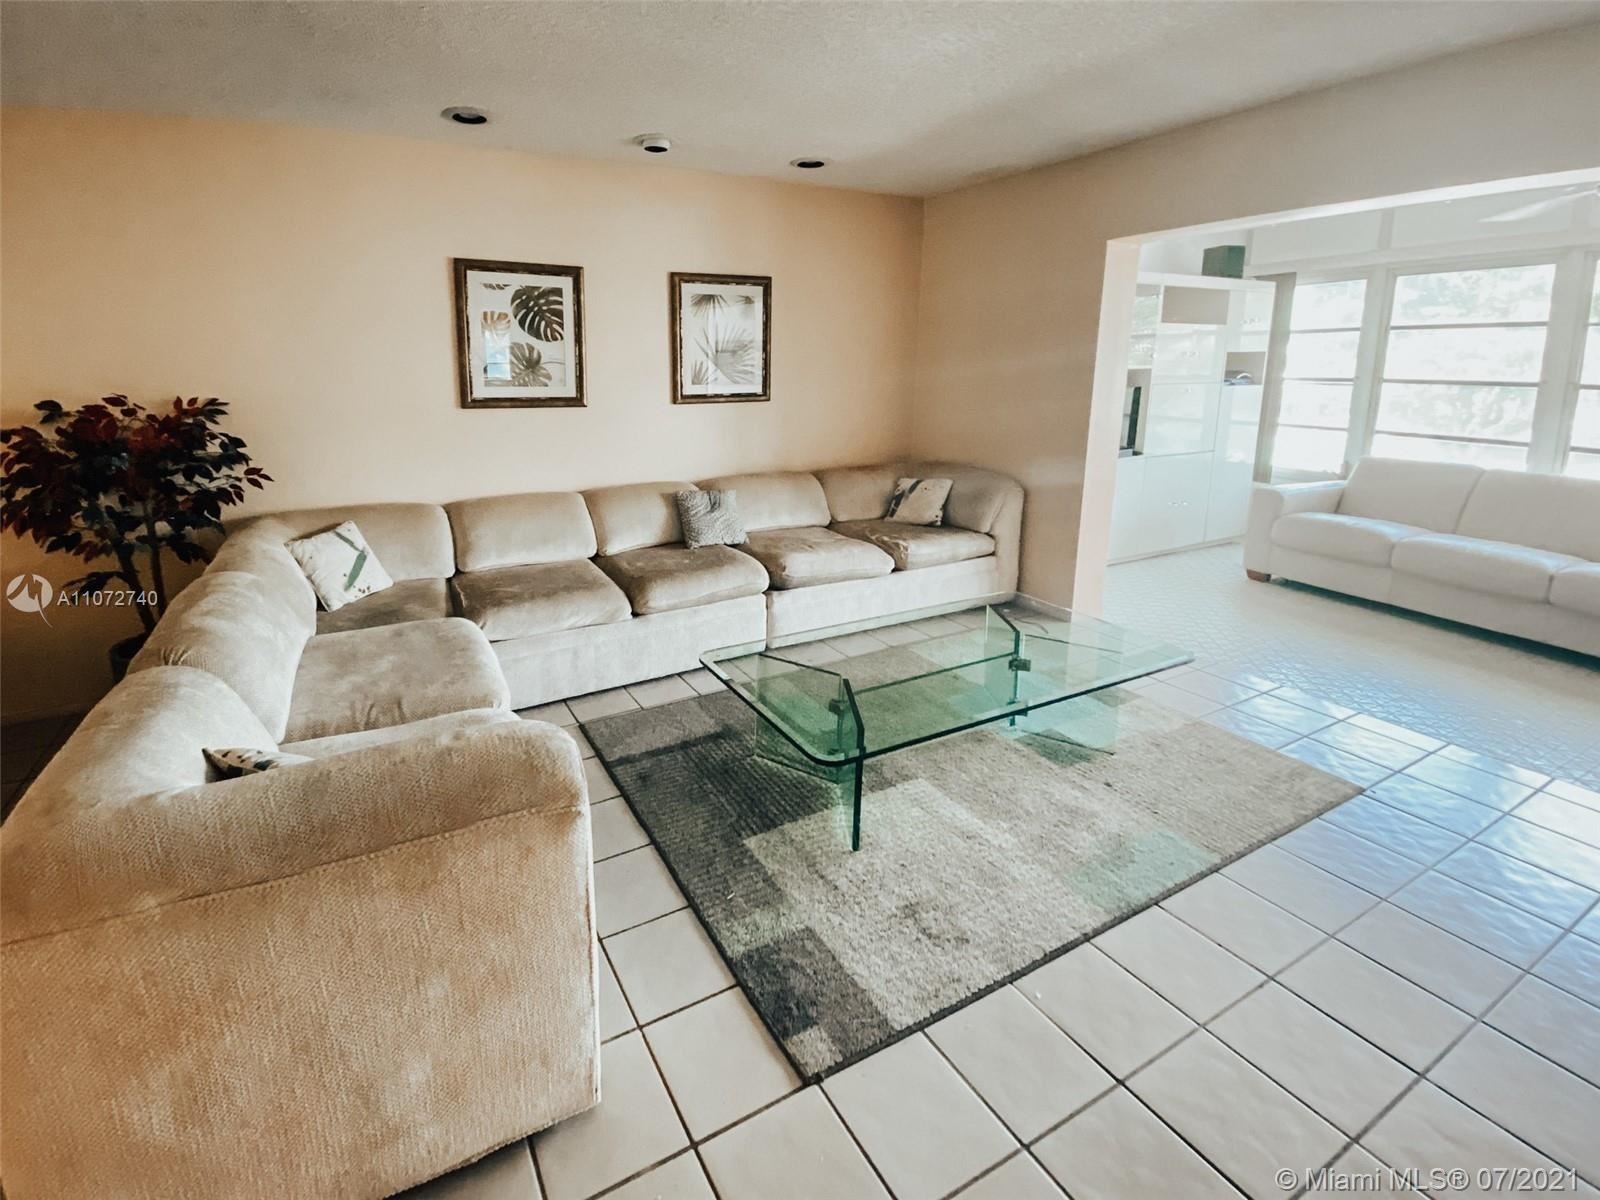 4000 NW 44th Ave #314, Lauderdale Lakes, FL 33319 - #: A11072740